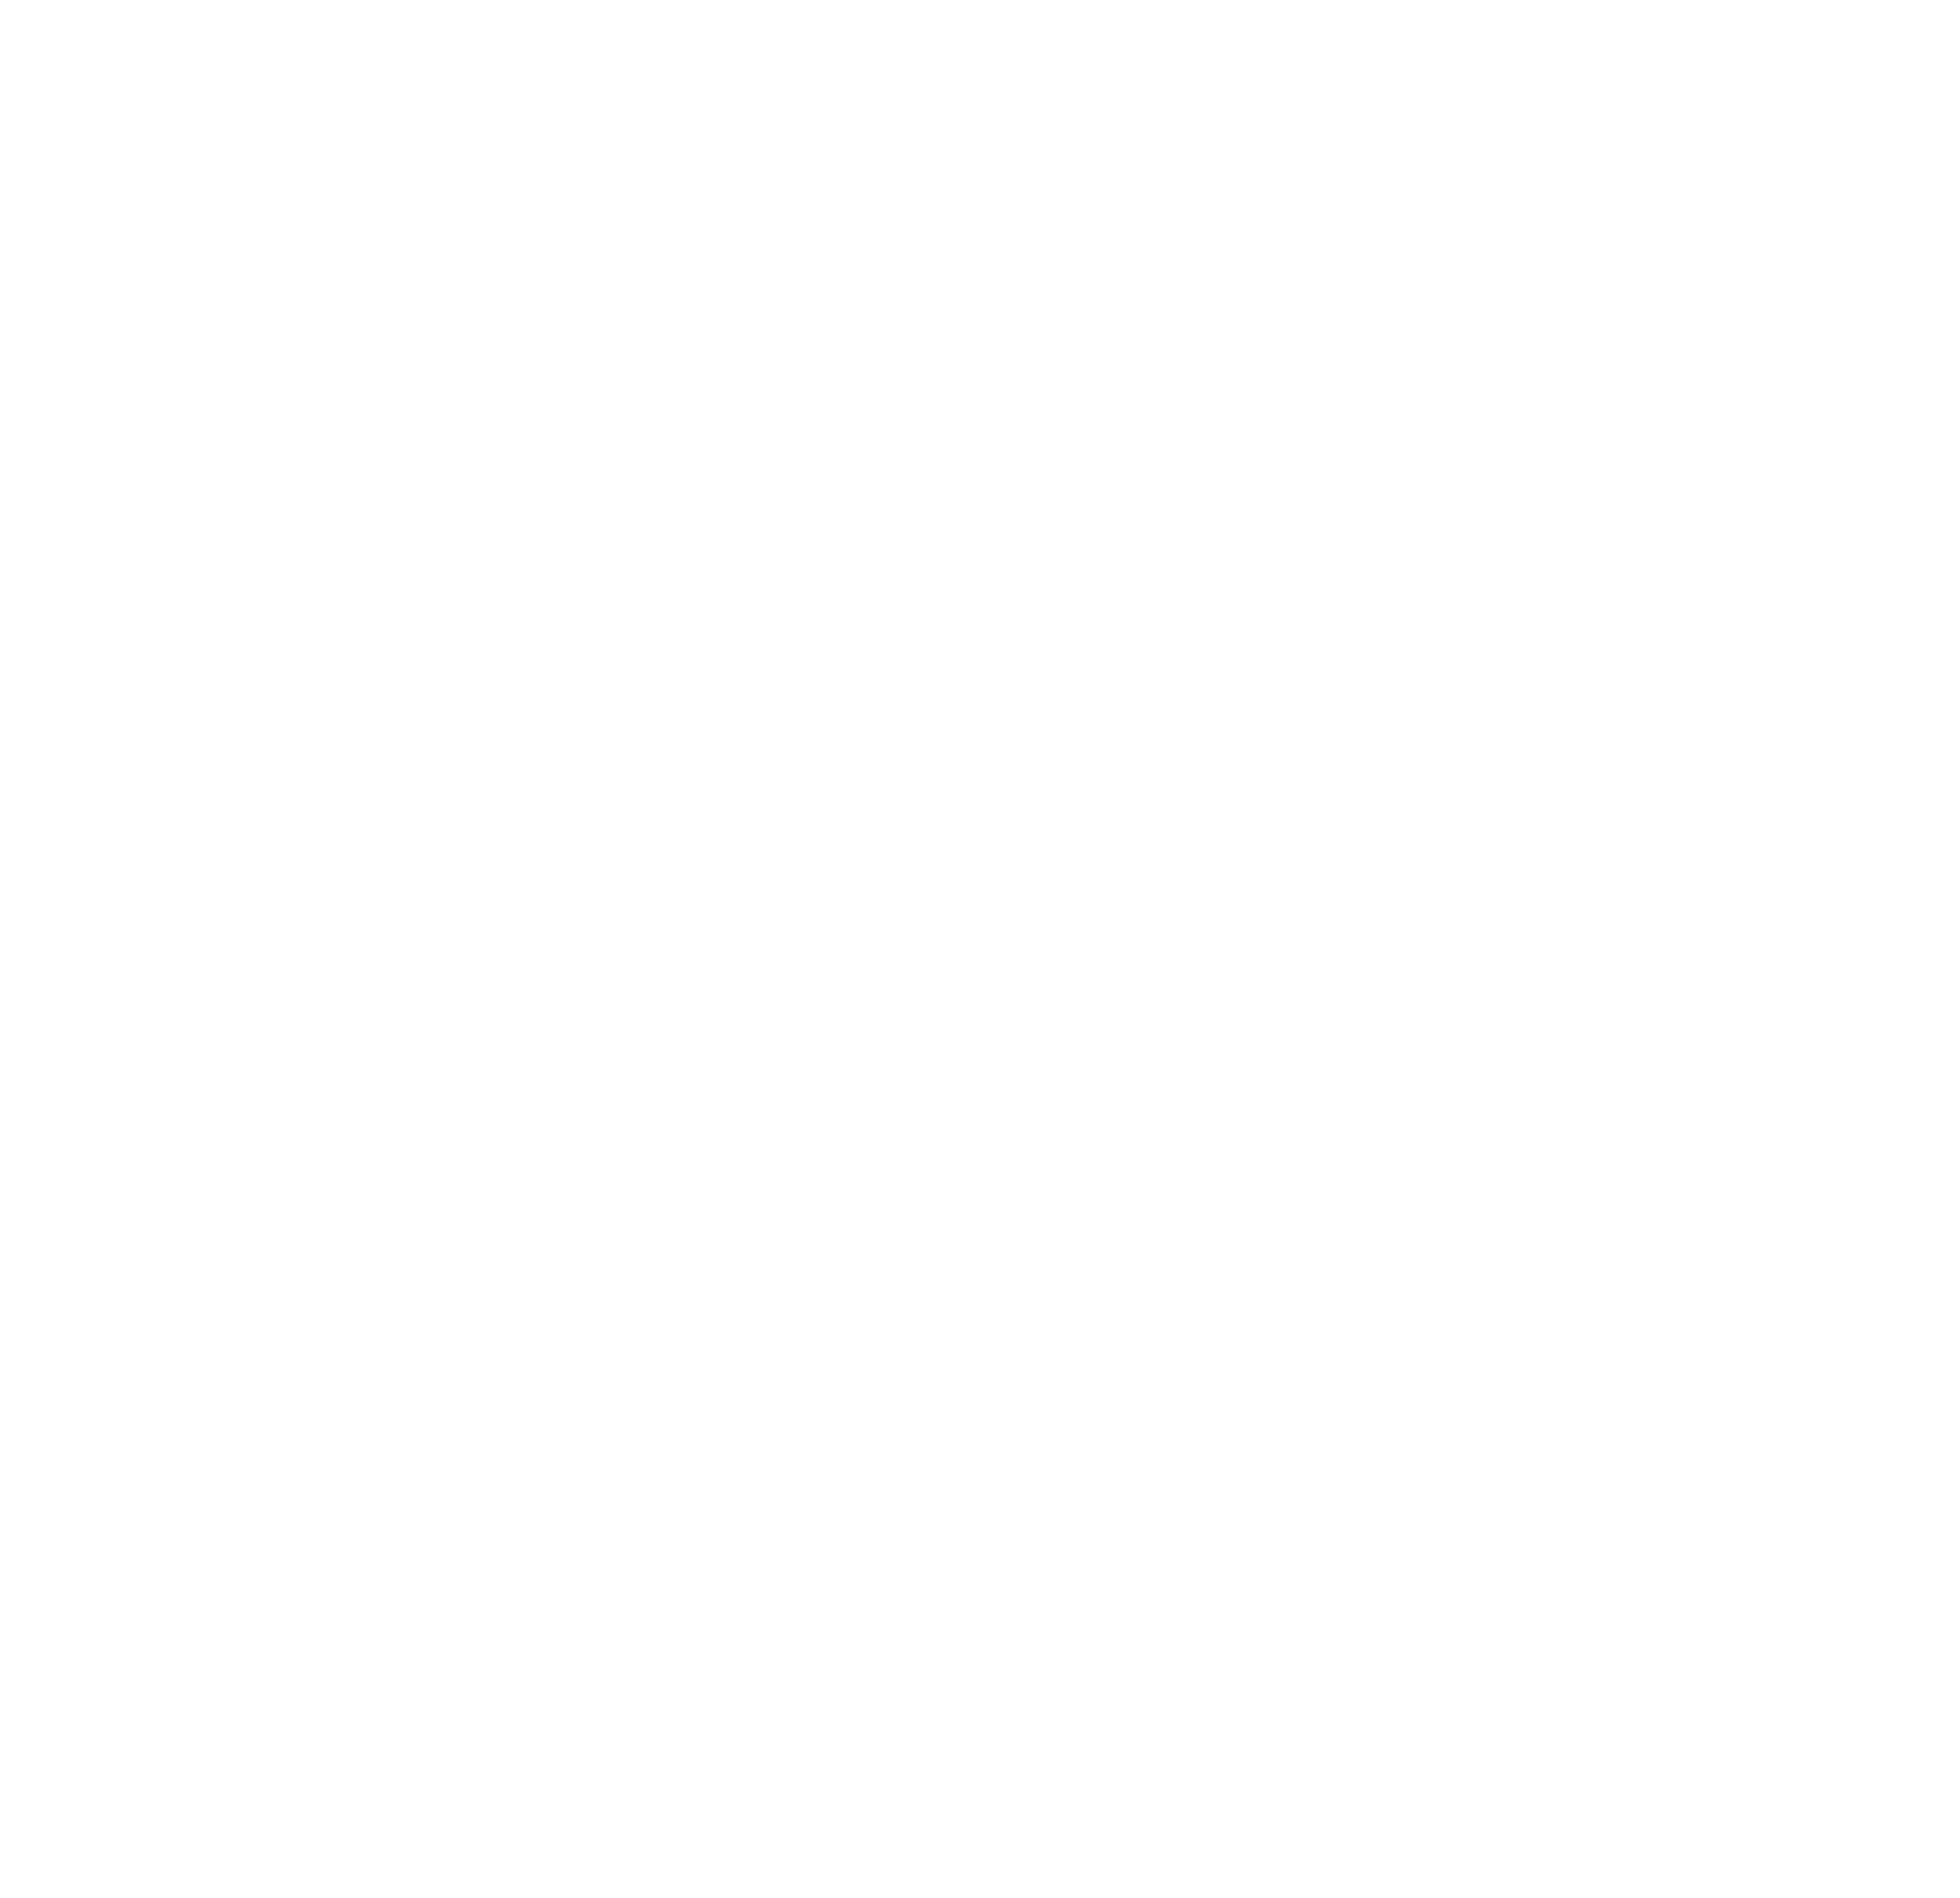 Merry christmas and happy new year clipart clip art free Merry Christmas and Happy New Year Text PNG Clip Art Image ... clip art free